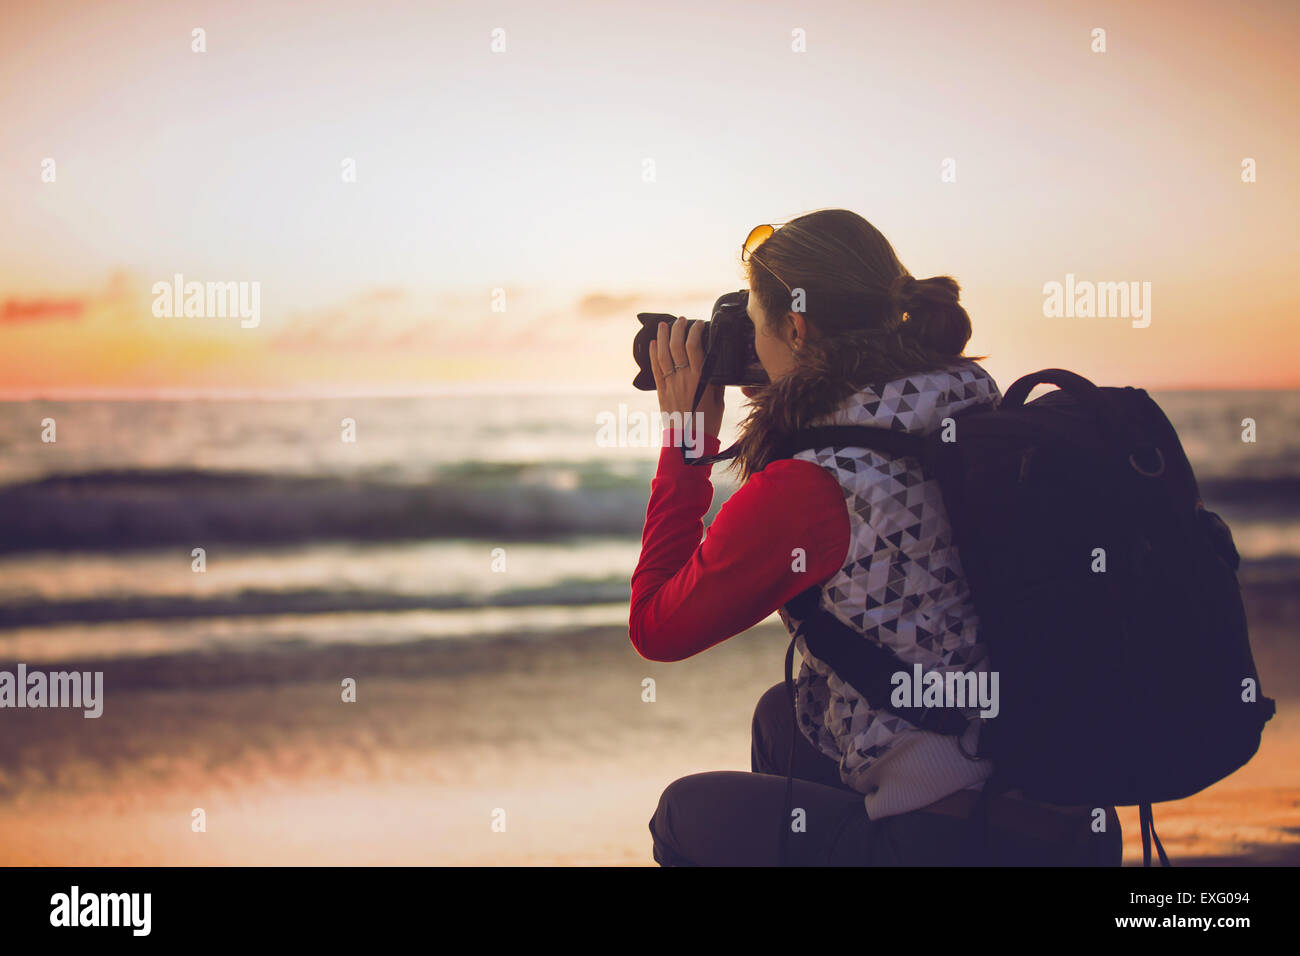 Girl photographer taking pictures with SLR camera at sunset on the beach - Stock Image